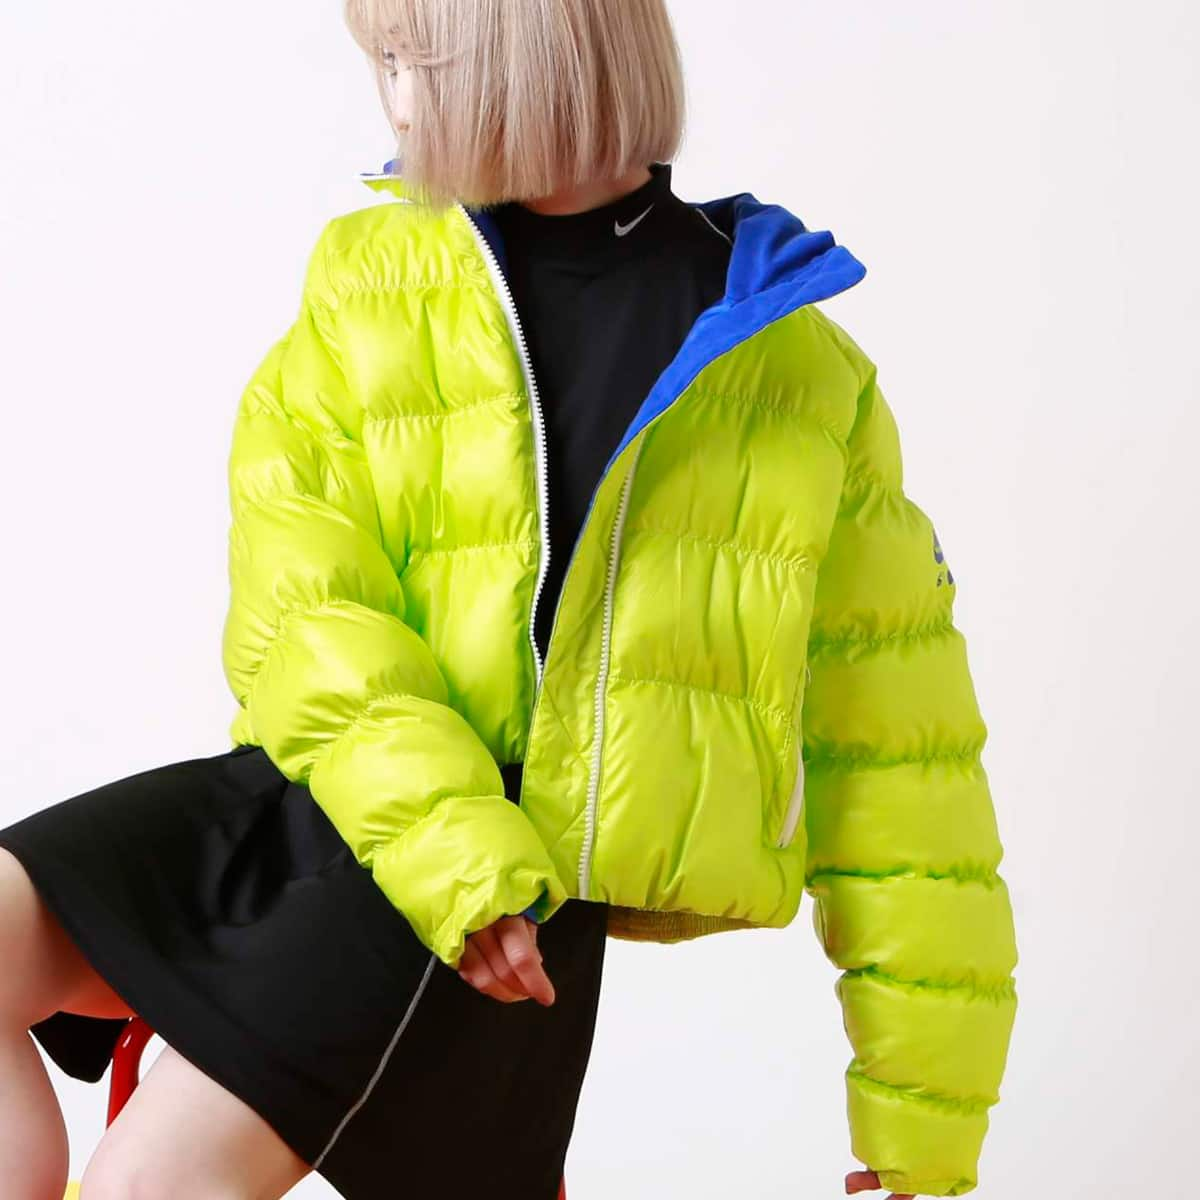 NIKE W NRG NXN SYNFILL PUFFER SHINE CYBER/GAME ROYAL 19HO-S_photo_large